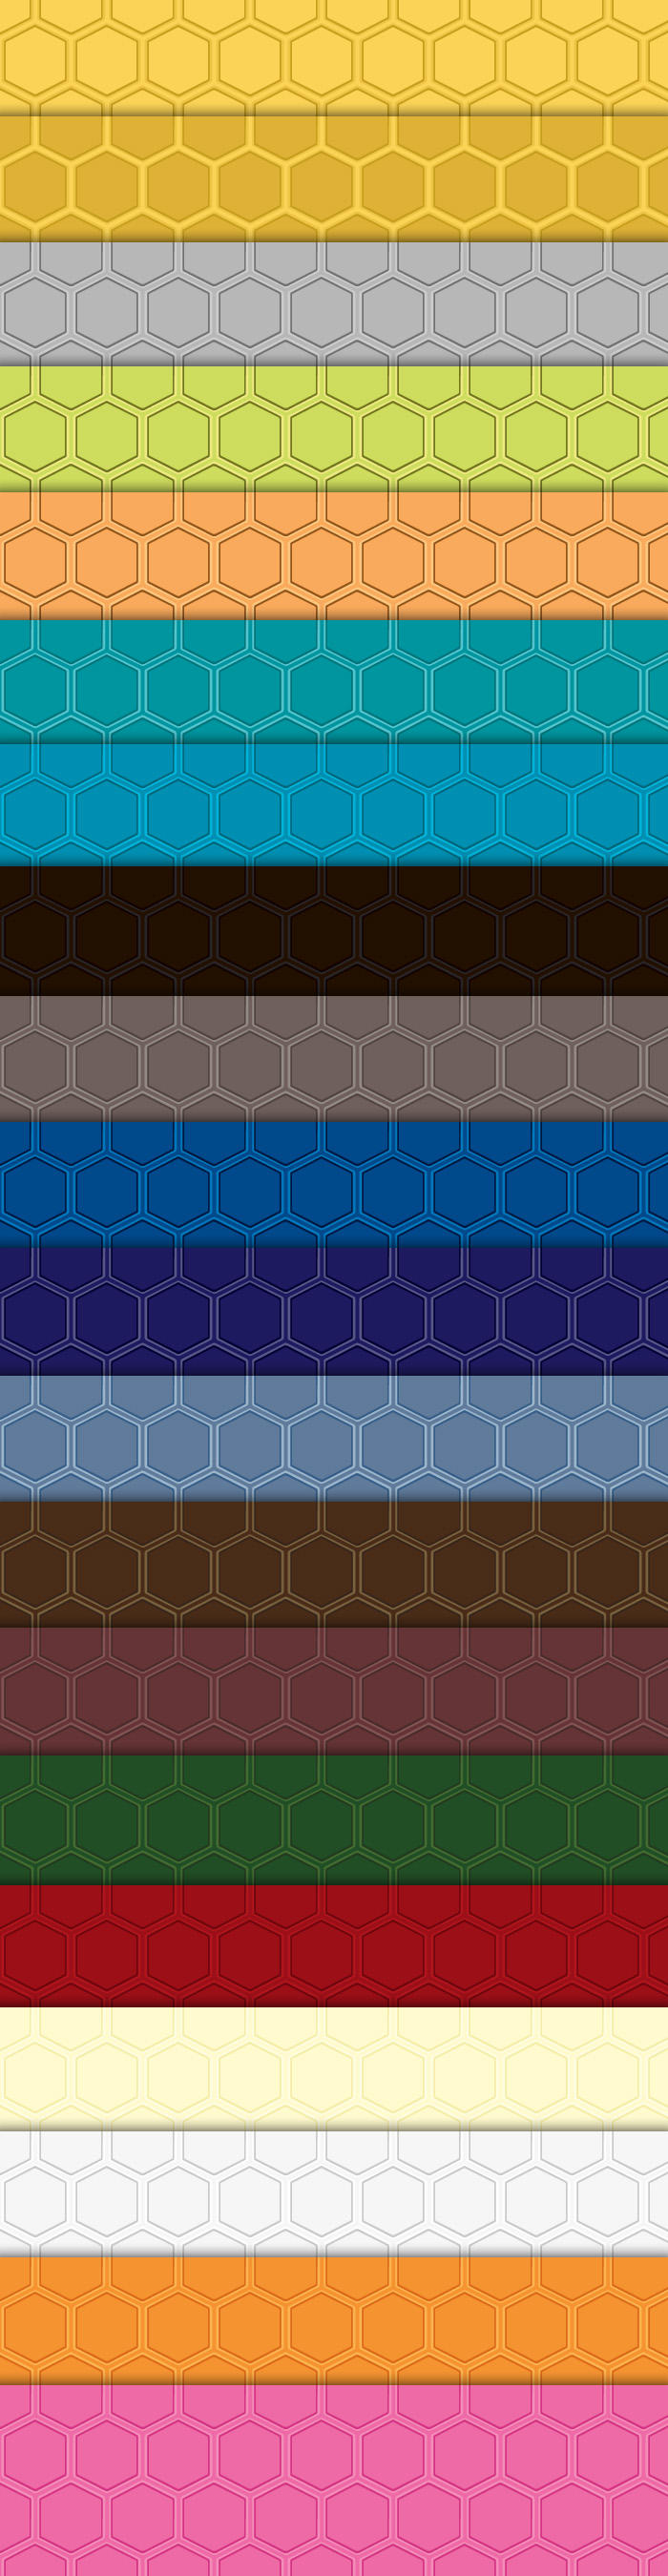 Modern Honeycomb Photoshop Patterns by sdwhaven